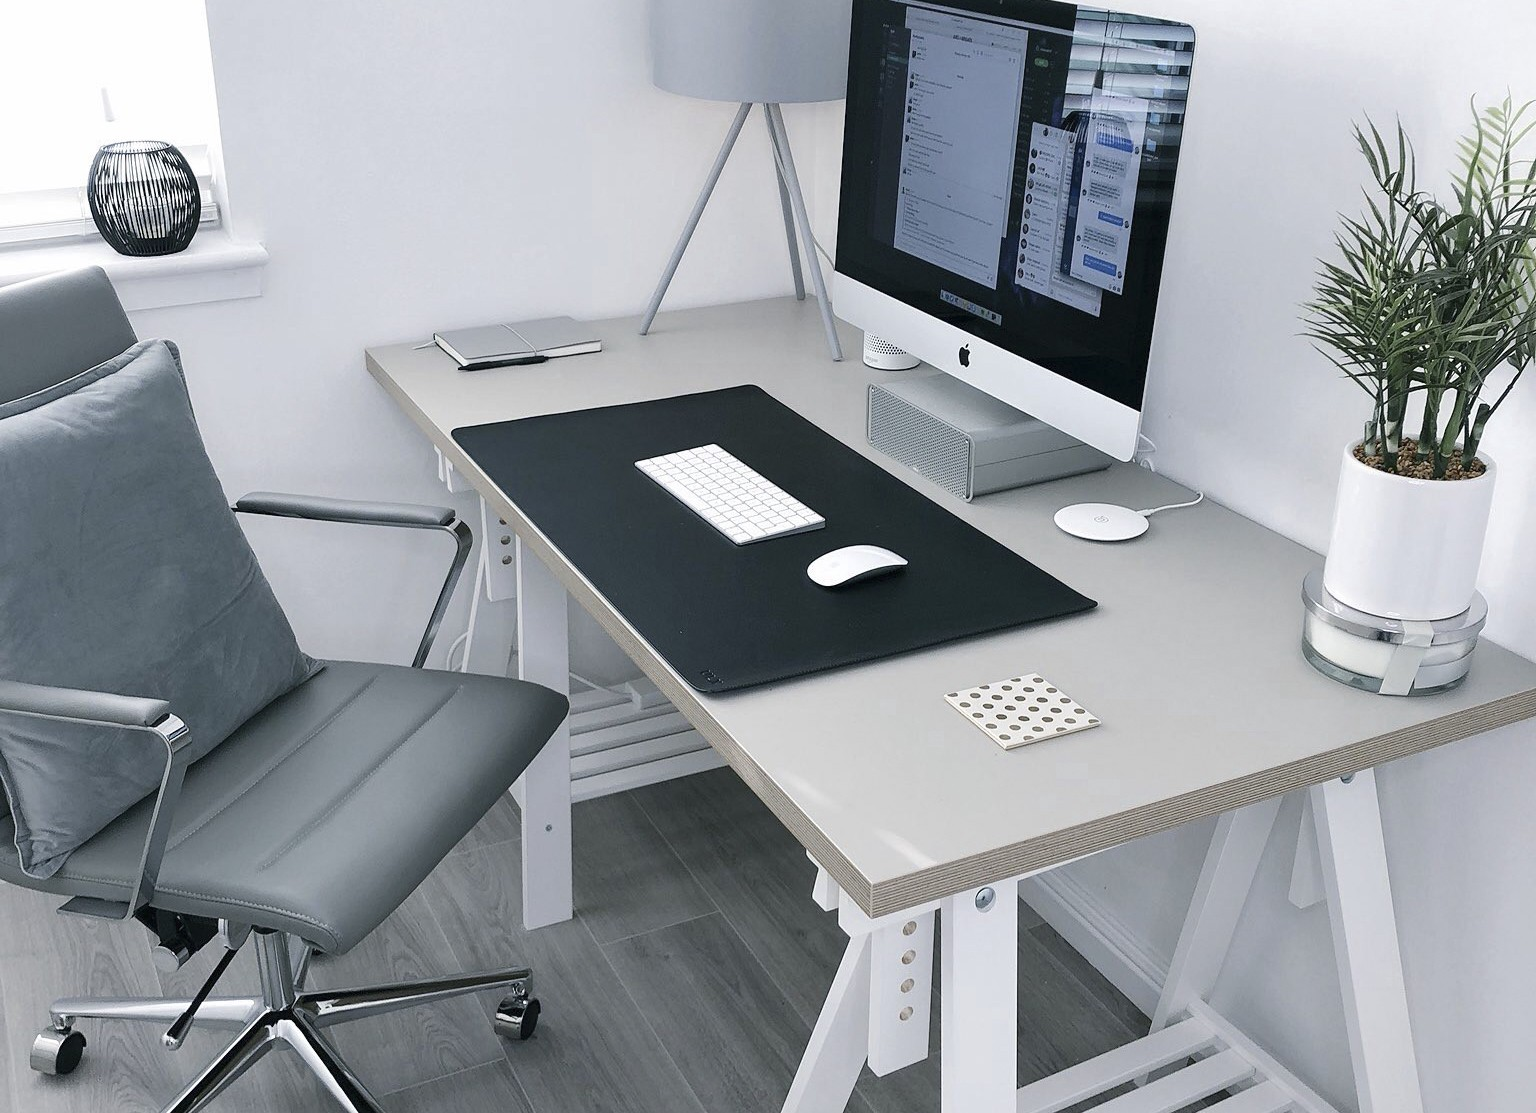 Ergonomic workspace